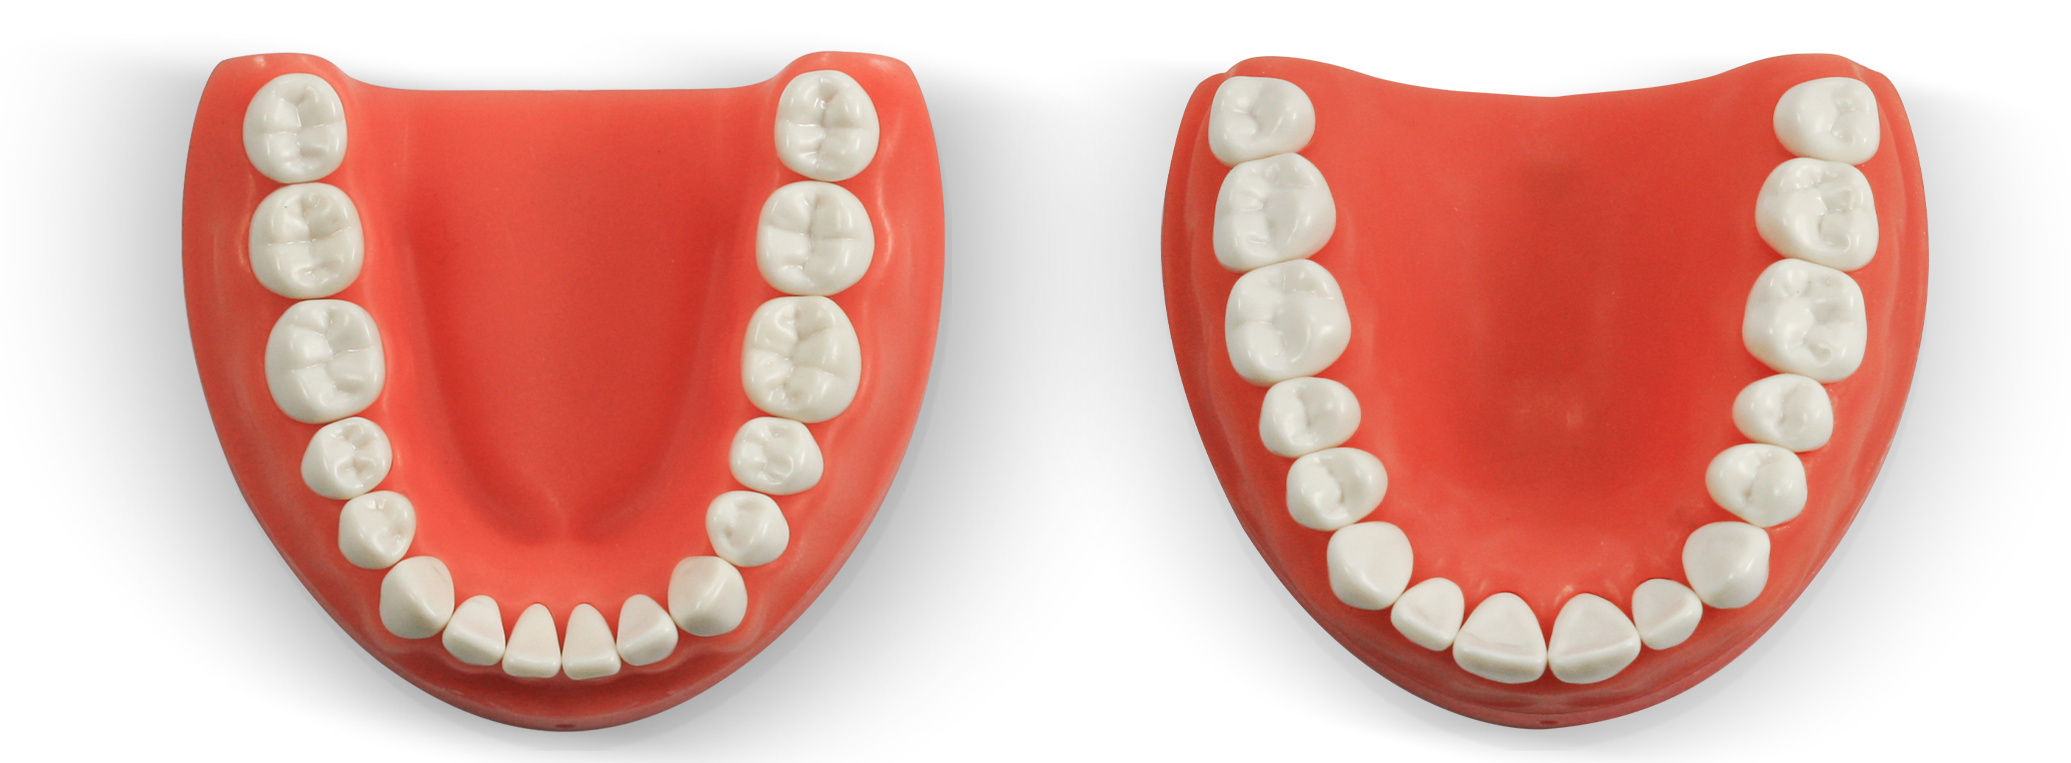 ModuPRO One Upper and Lower Gums with M300 teeth